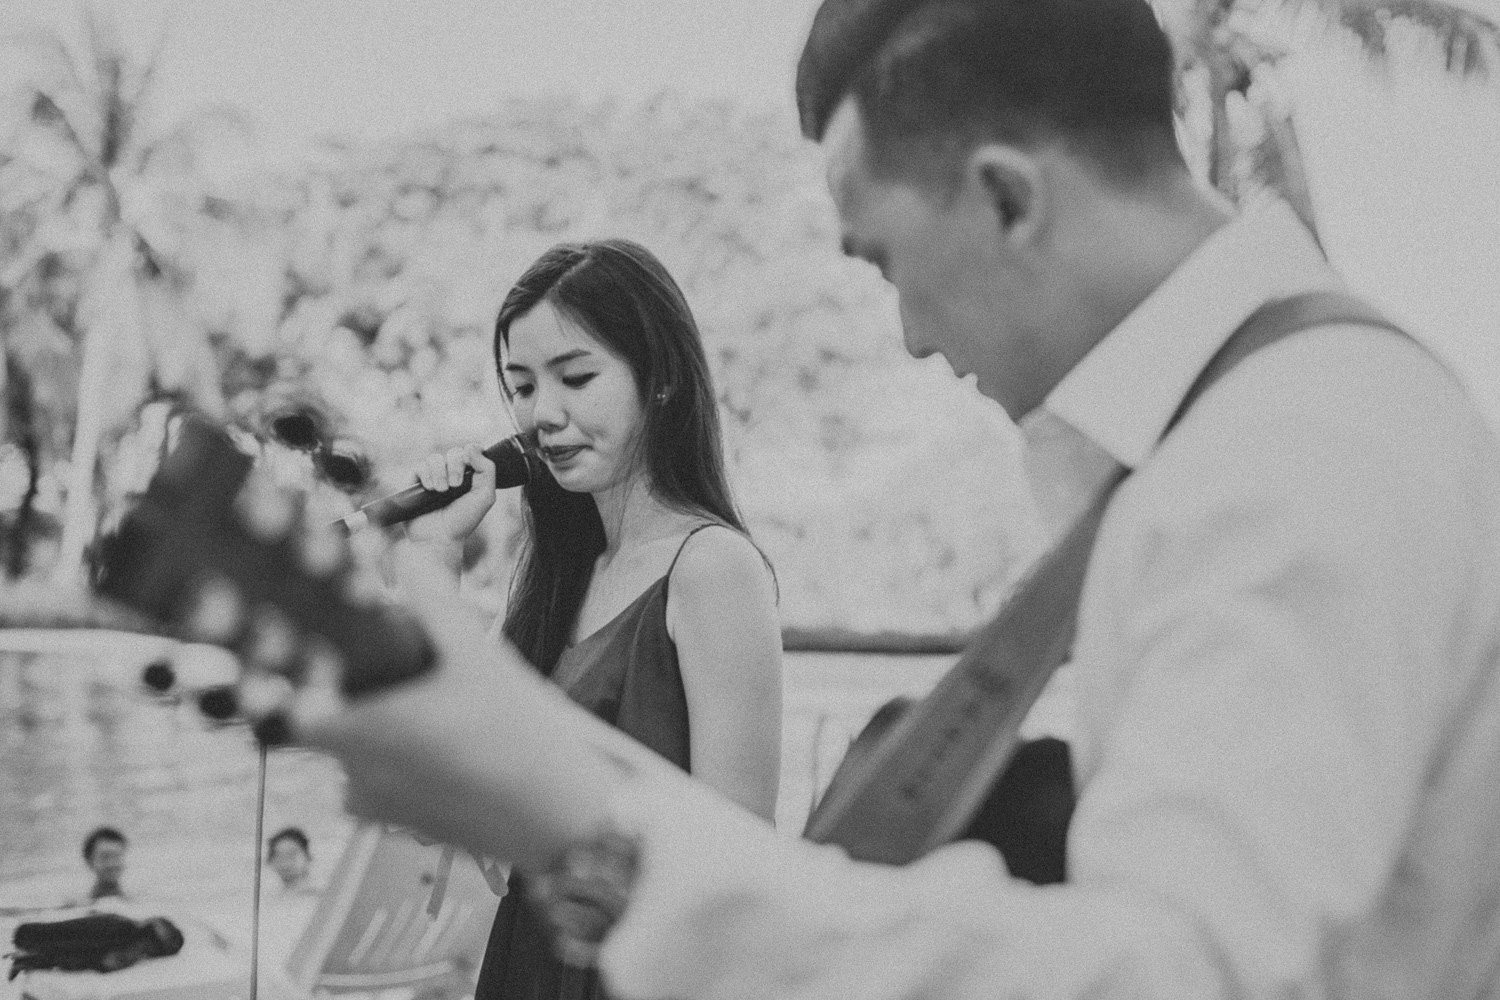 bittersweet photography Singapore wedding photographer jonathan 85